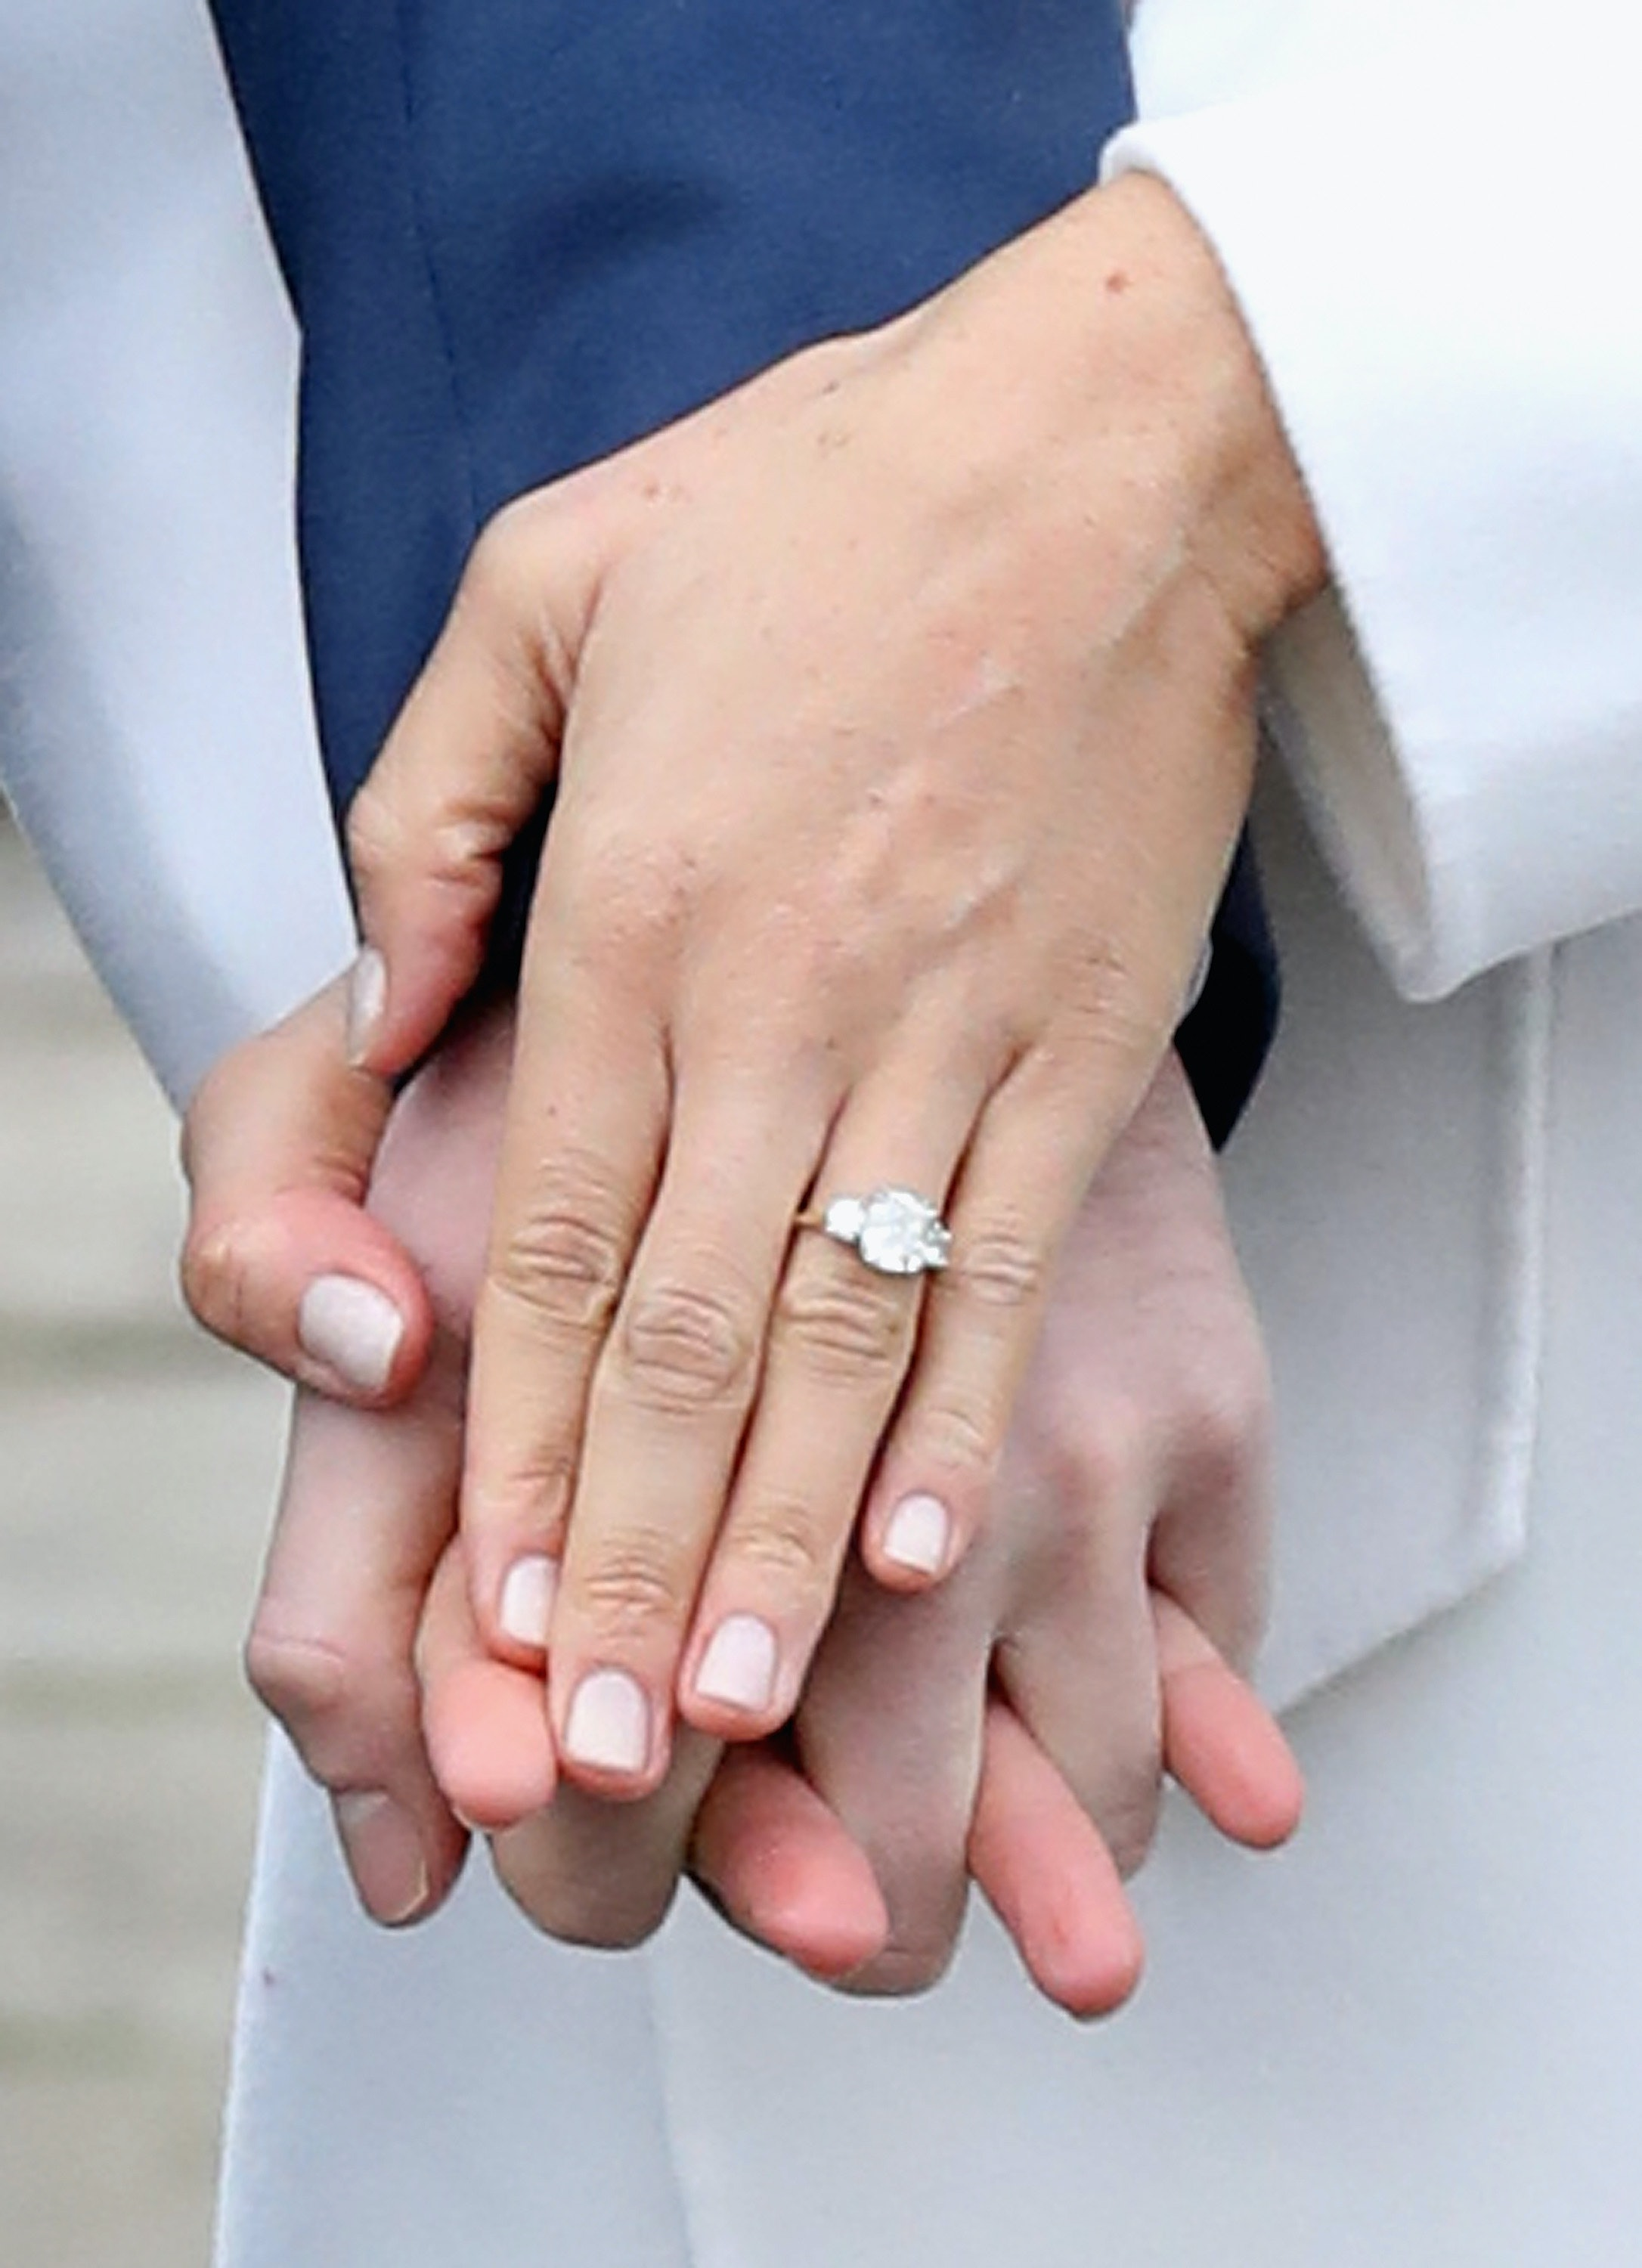 latest middleton rings unique engagement news kate best celeb celebrity hbz